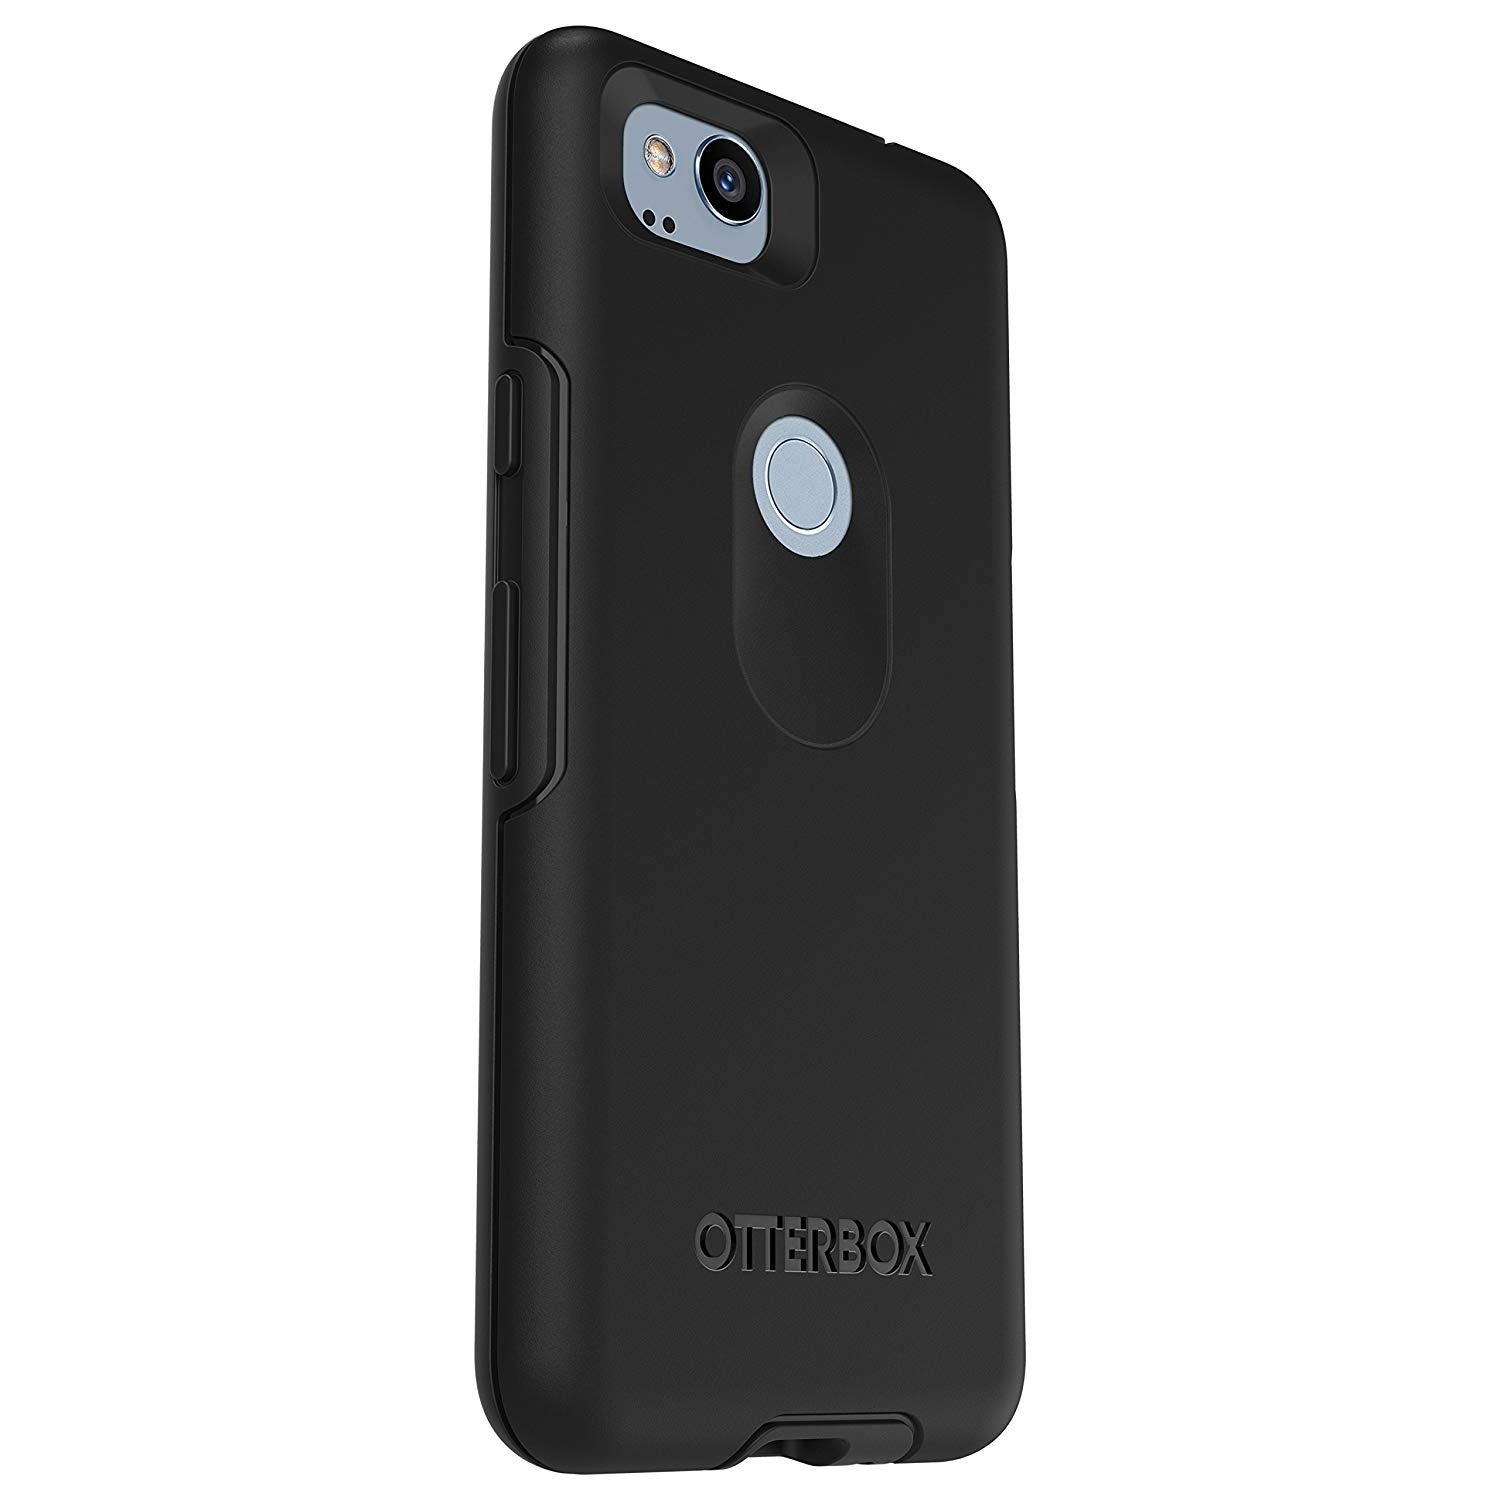 timeless design 0d434 4492f OtterBox Symmetry Series Protective Slim Case for Google Pixel 2 (NOT XL)